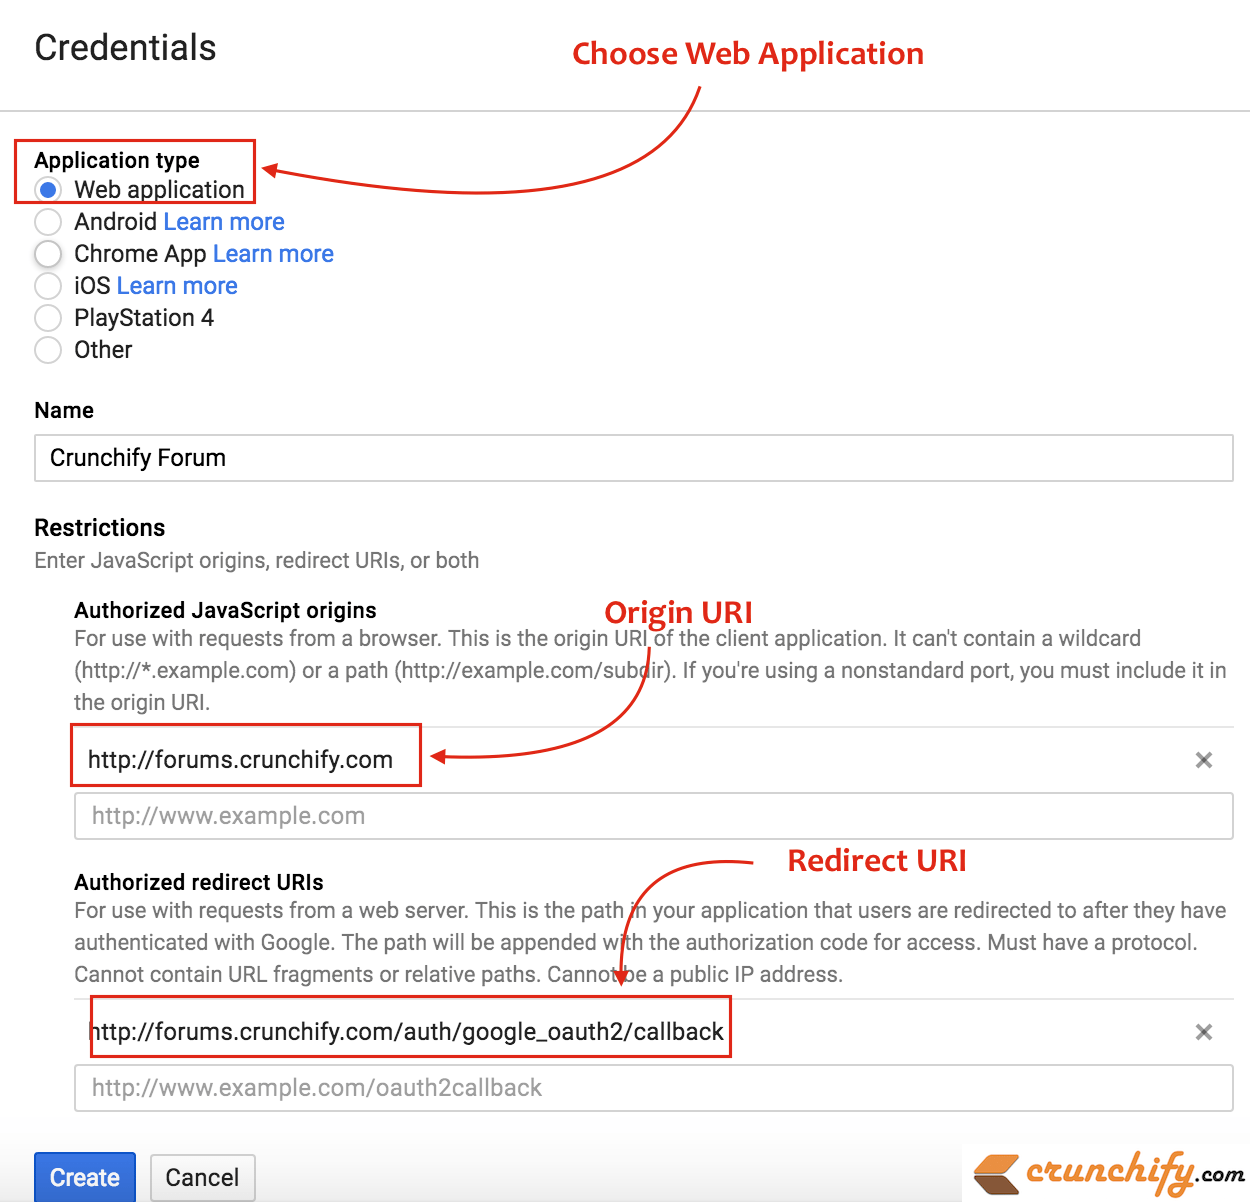 Choose Web Application and provide Origin URI and Redirect URI